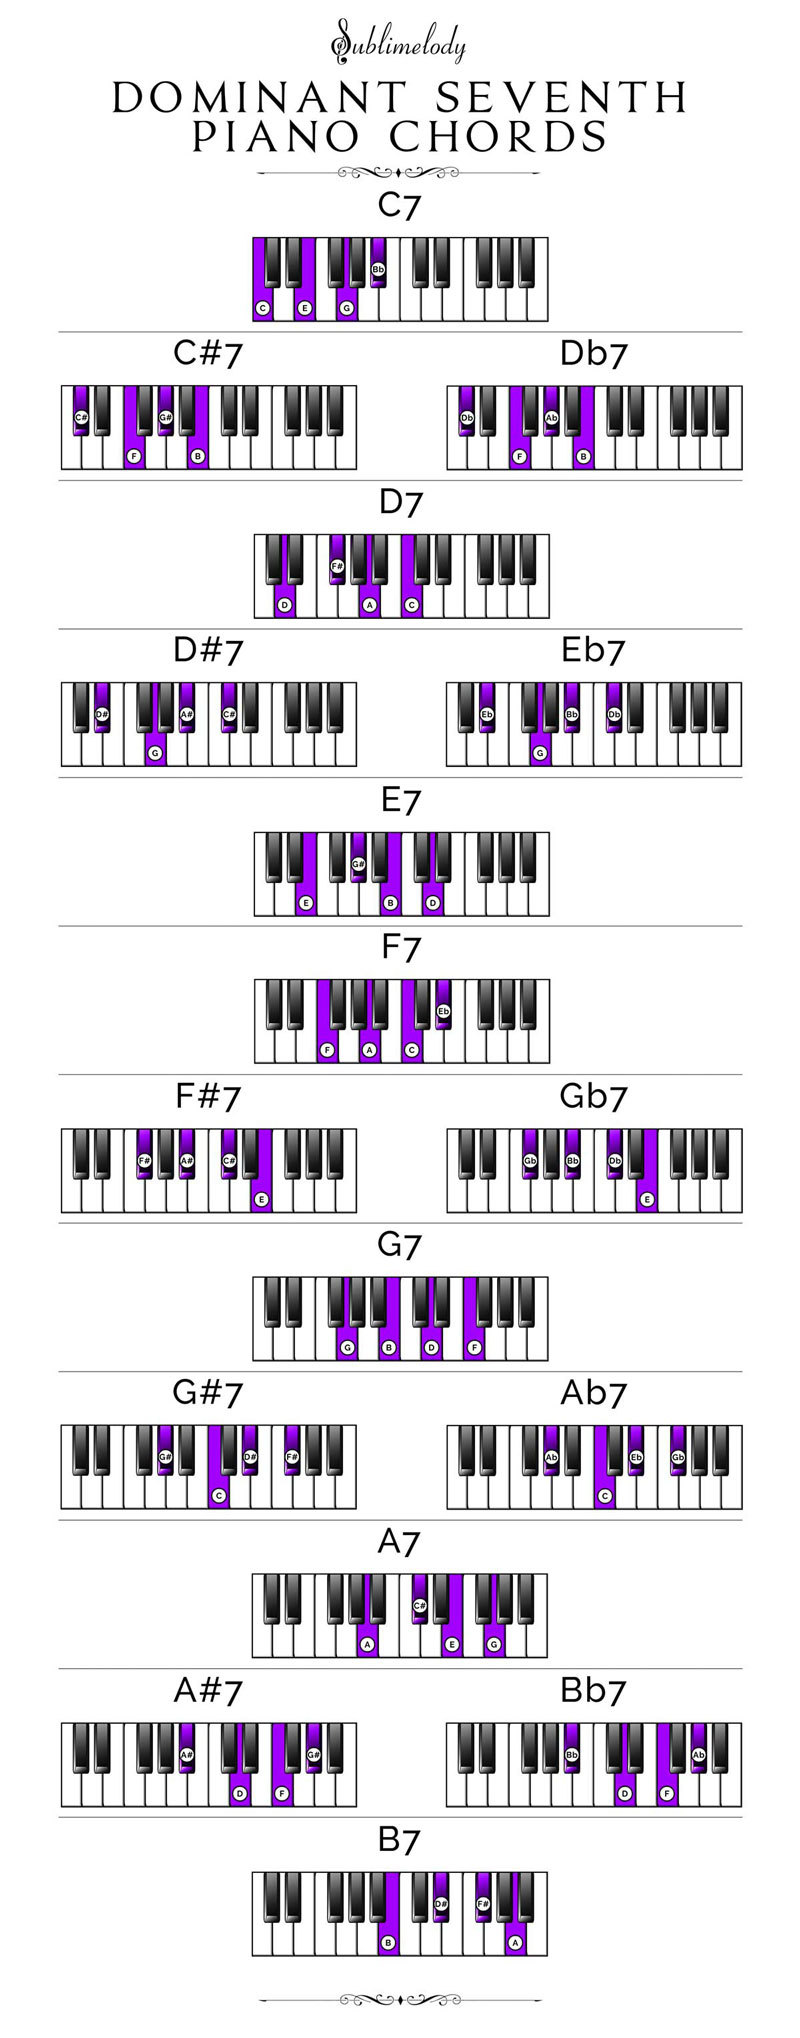 Piano Chords The Definitive Guide 2018 Sublimelody Chord Symble A7 Above A Bar It Means We Have To Play Dominant Seventh Chart